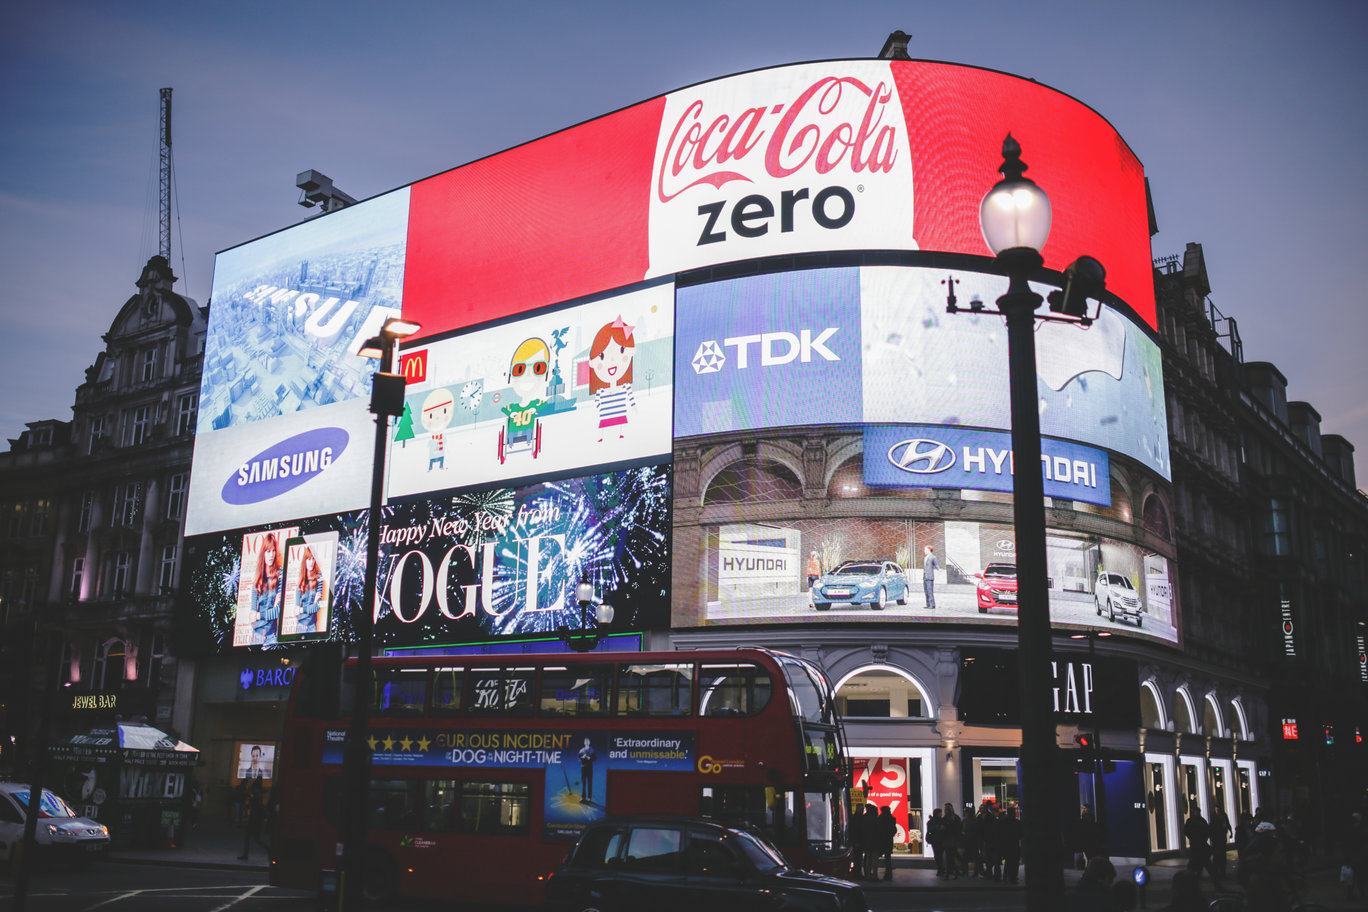 Image showing brightly-lit billboard with lots of marketing adverts, highlighting the fact that this kind of marketing may be a thing of the past, replaced with e-commerce personalisation instead.